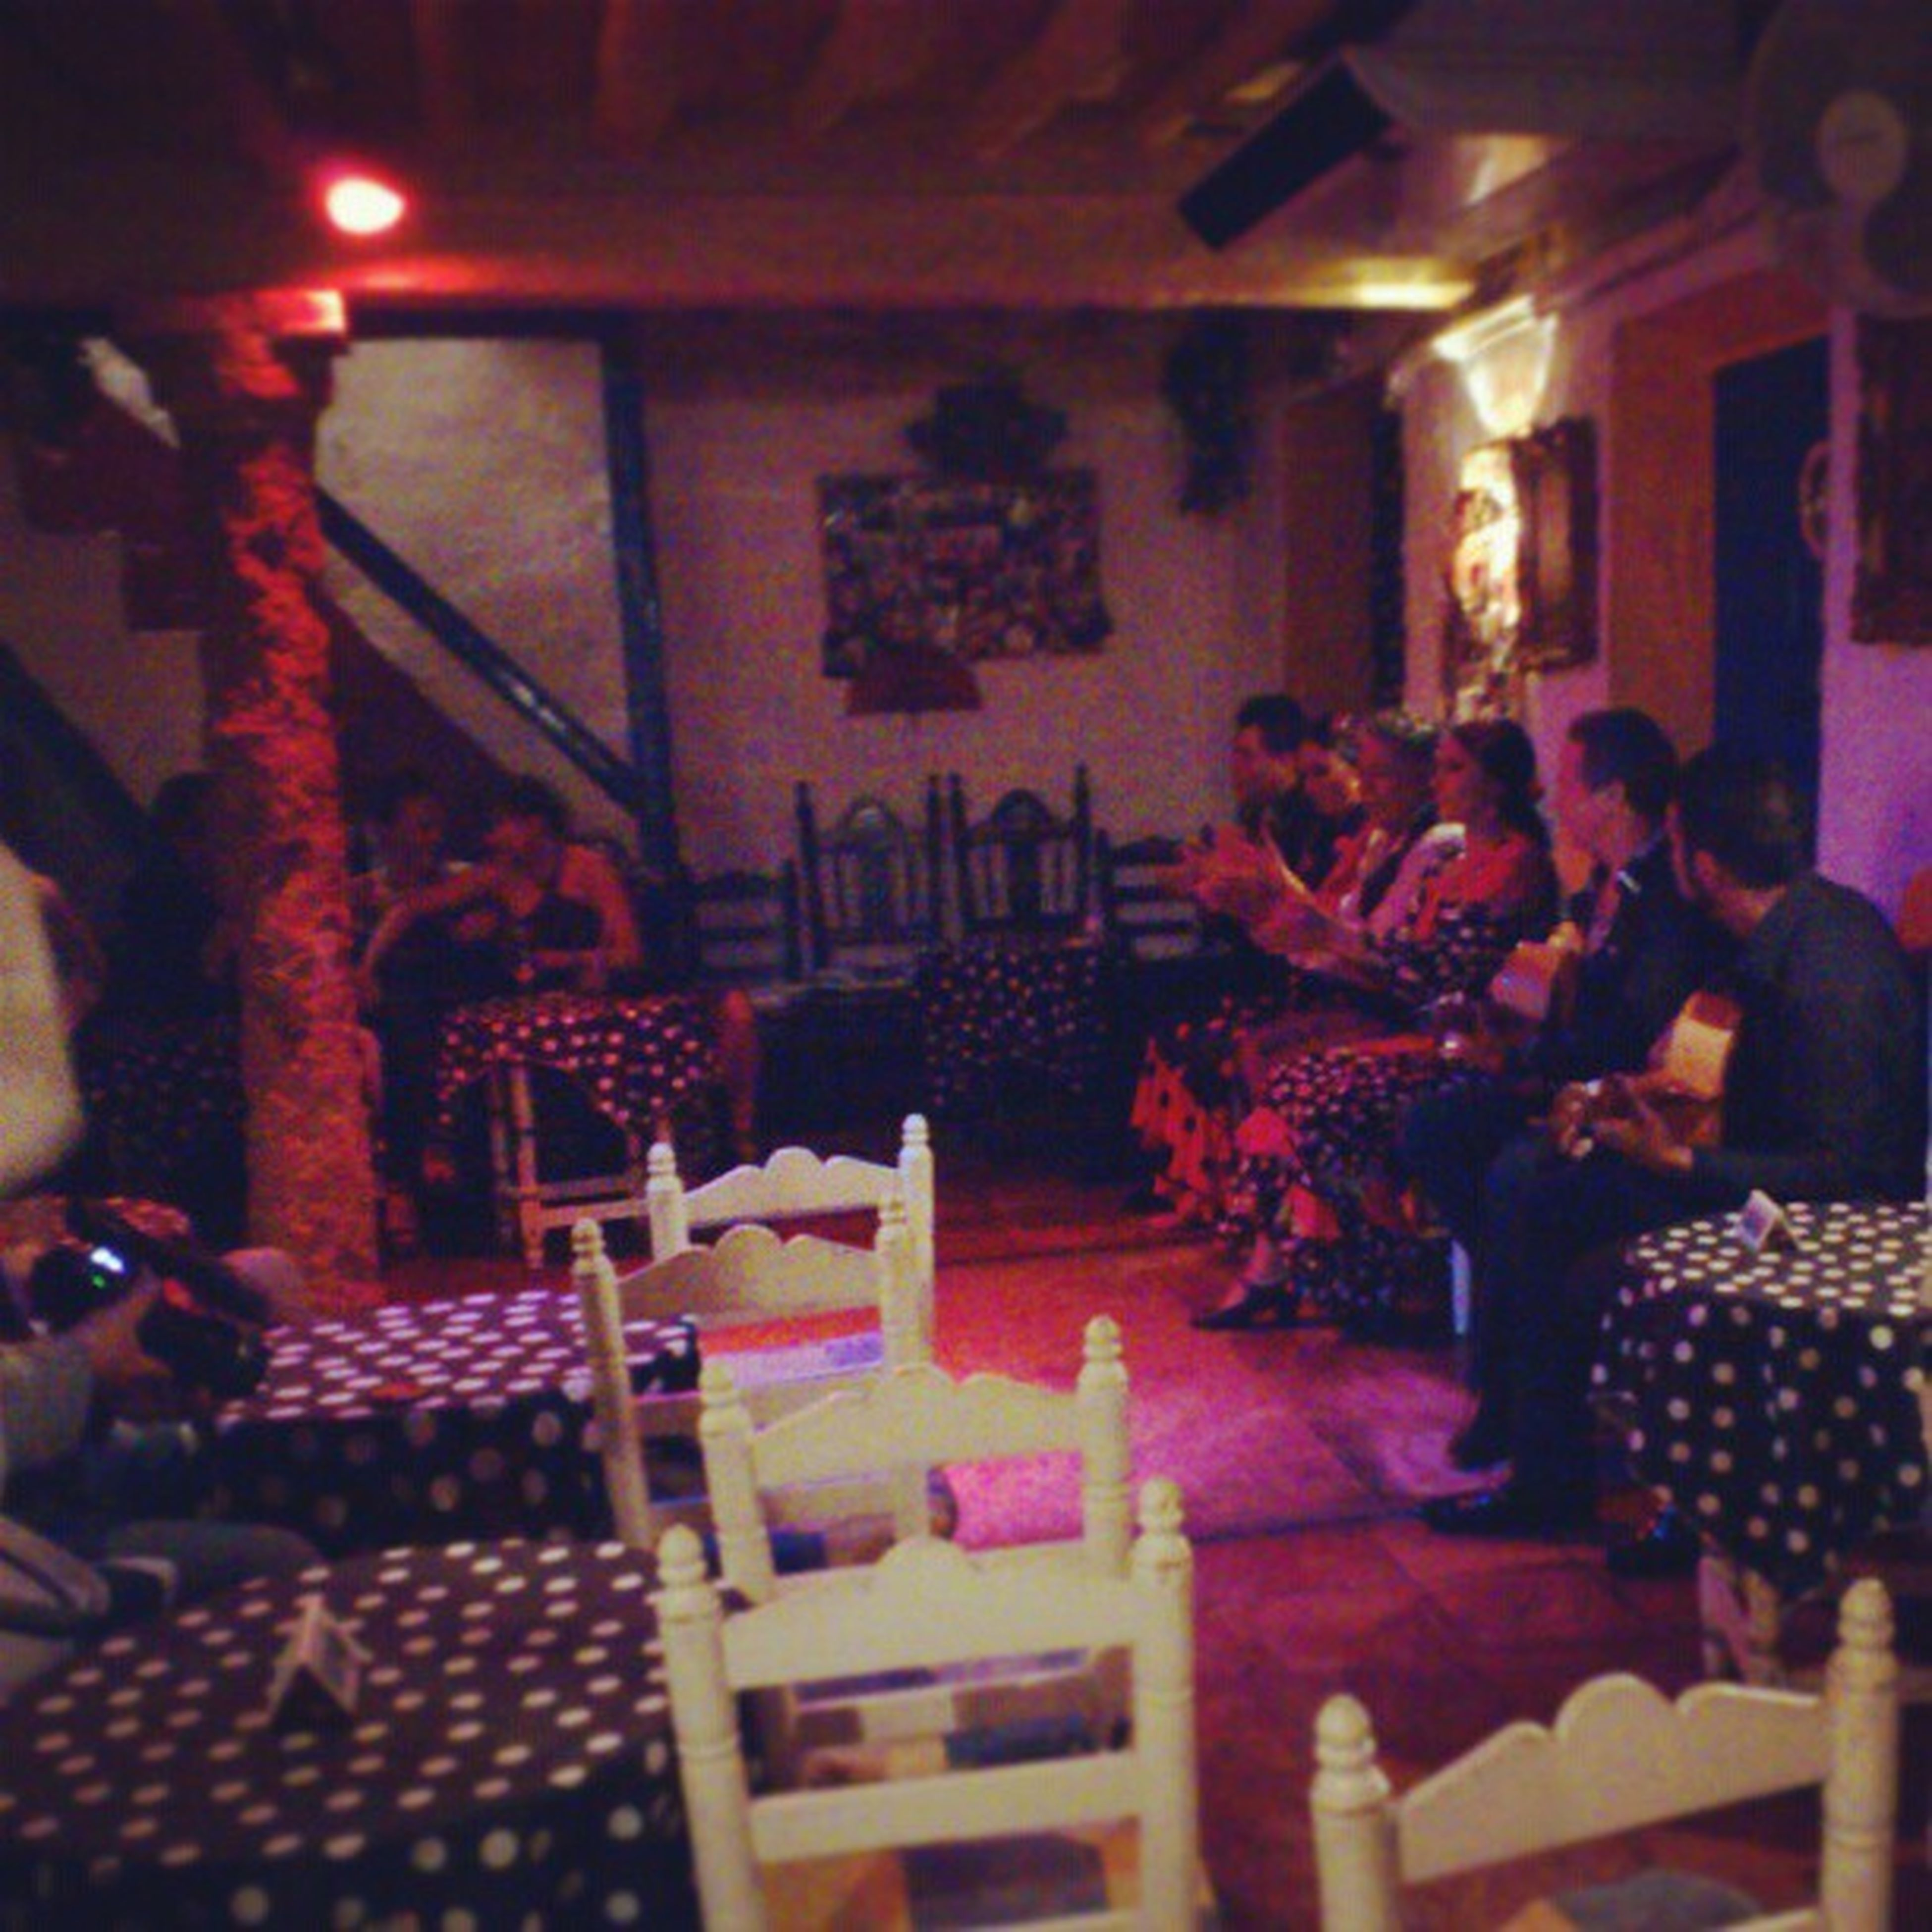 Great and Amazing Flamenco Show , highly recommended to go and enjoy when your in marbella spain